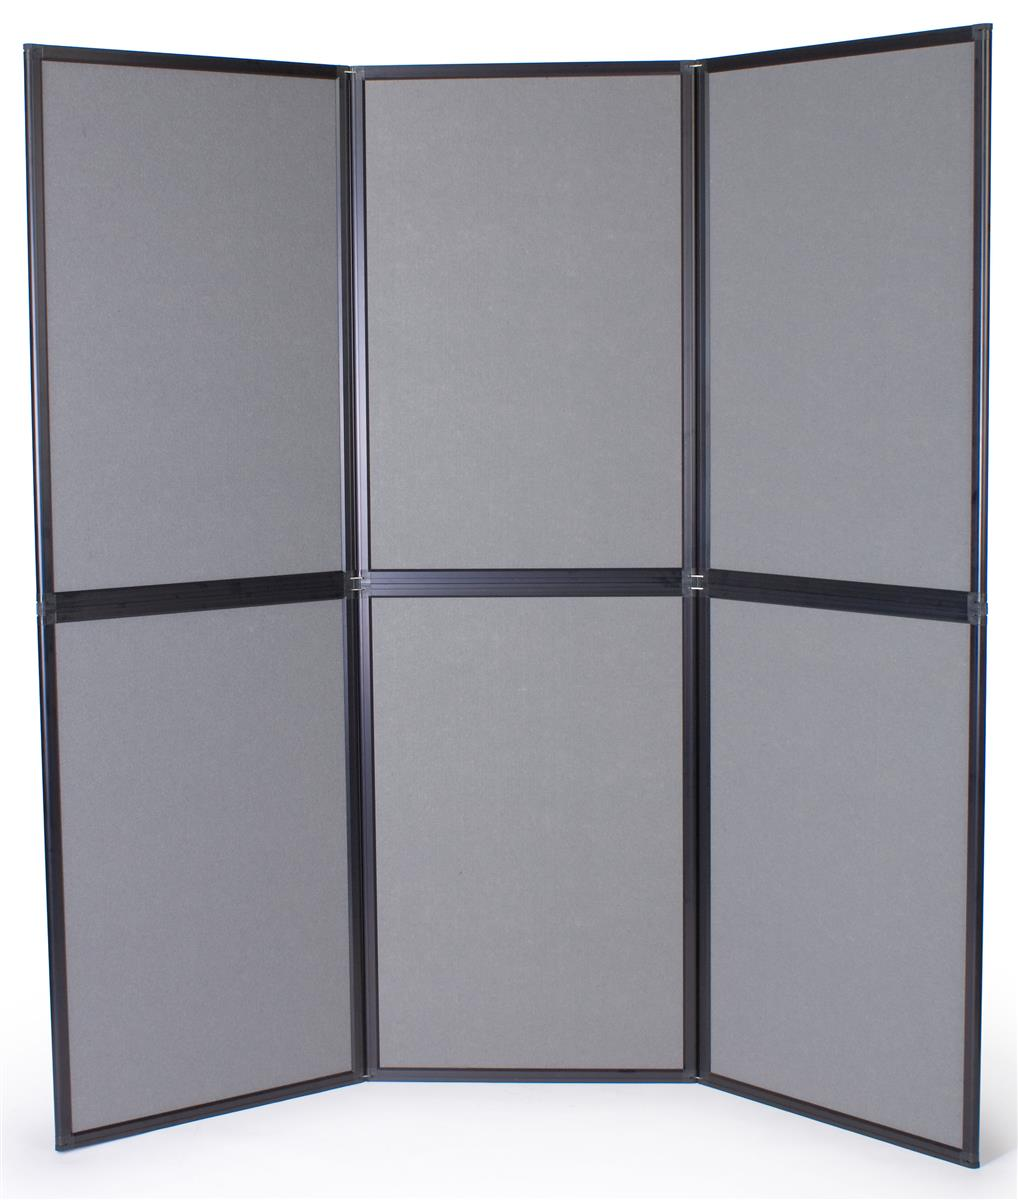 Foldable Display Panel For Trade Show Booths Gray Fabric